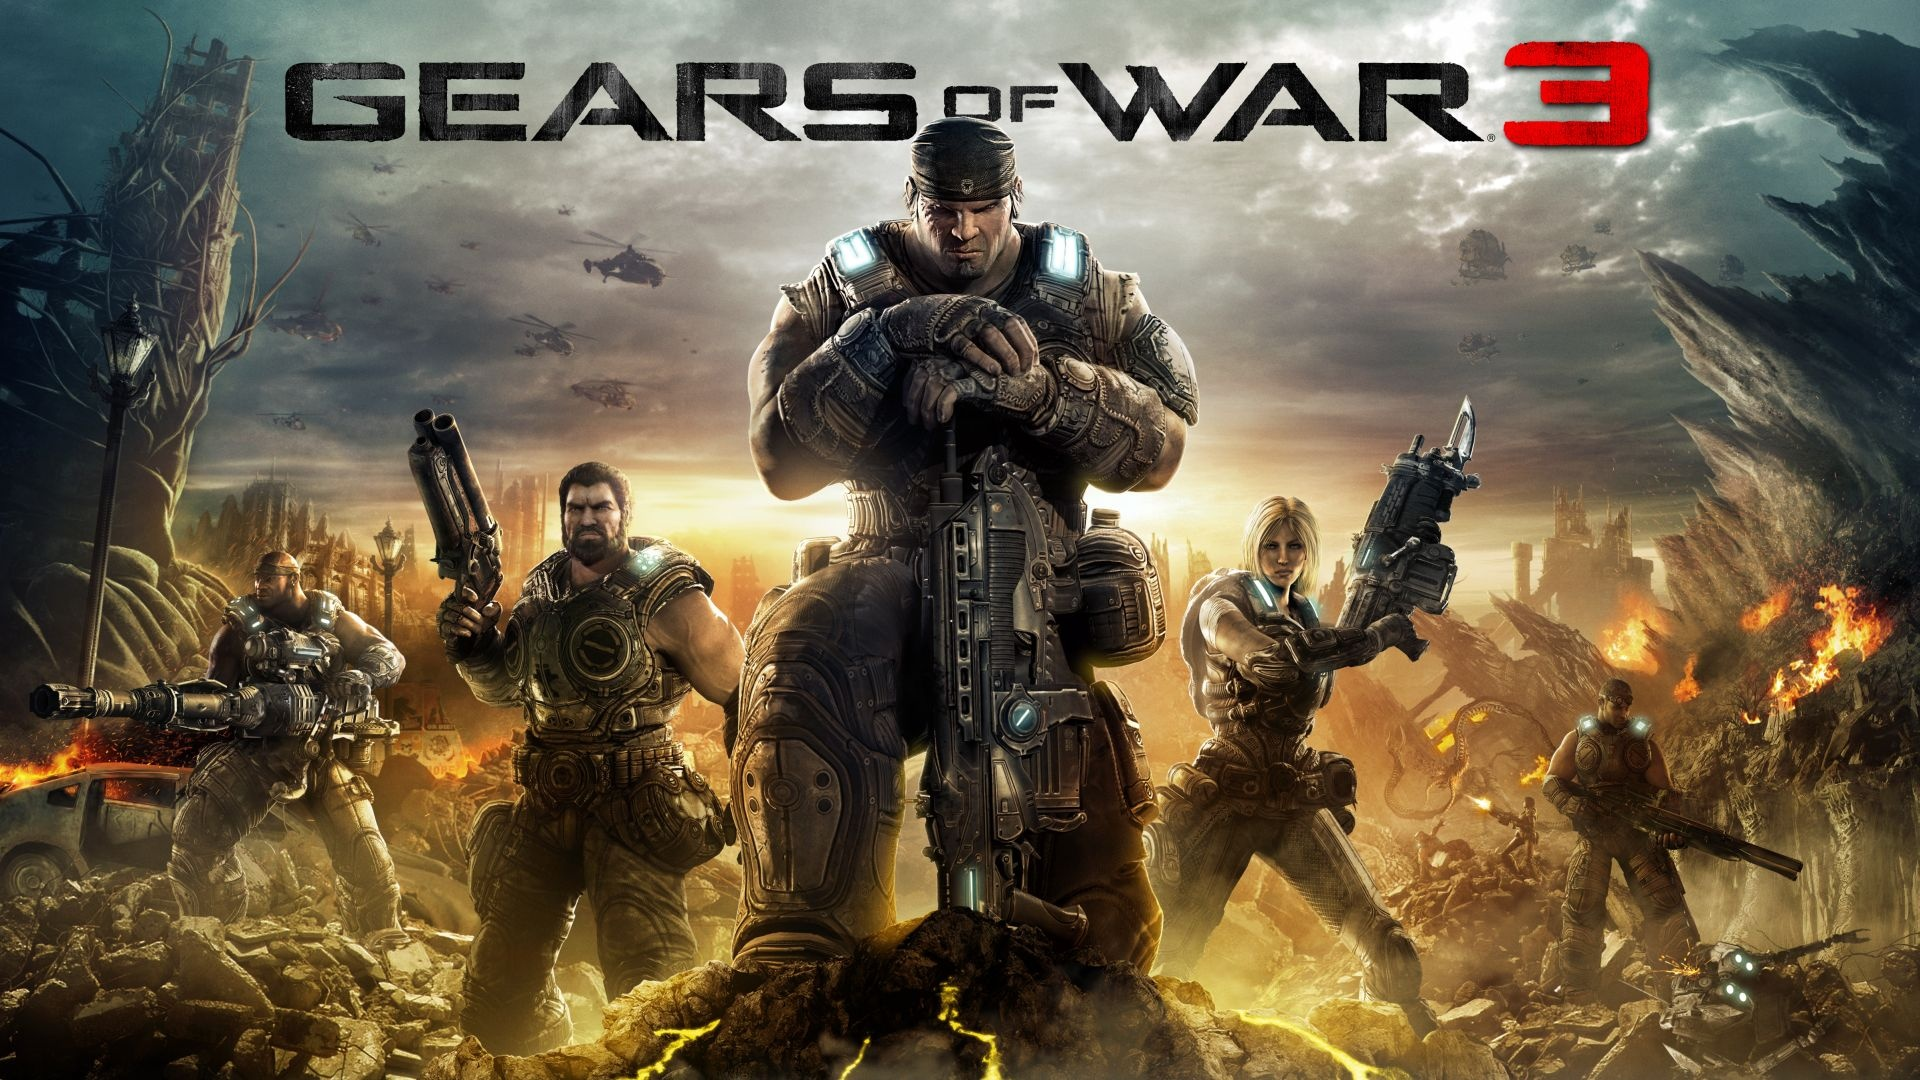 Gears of war 3 Desktop Wallpapers FREE on Latorocom 1920x1080